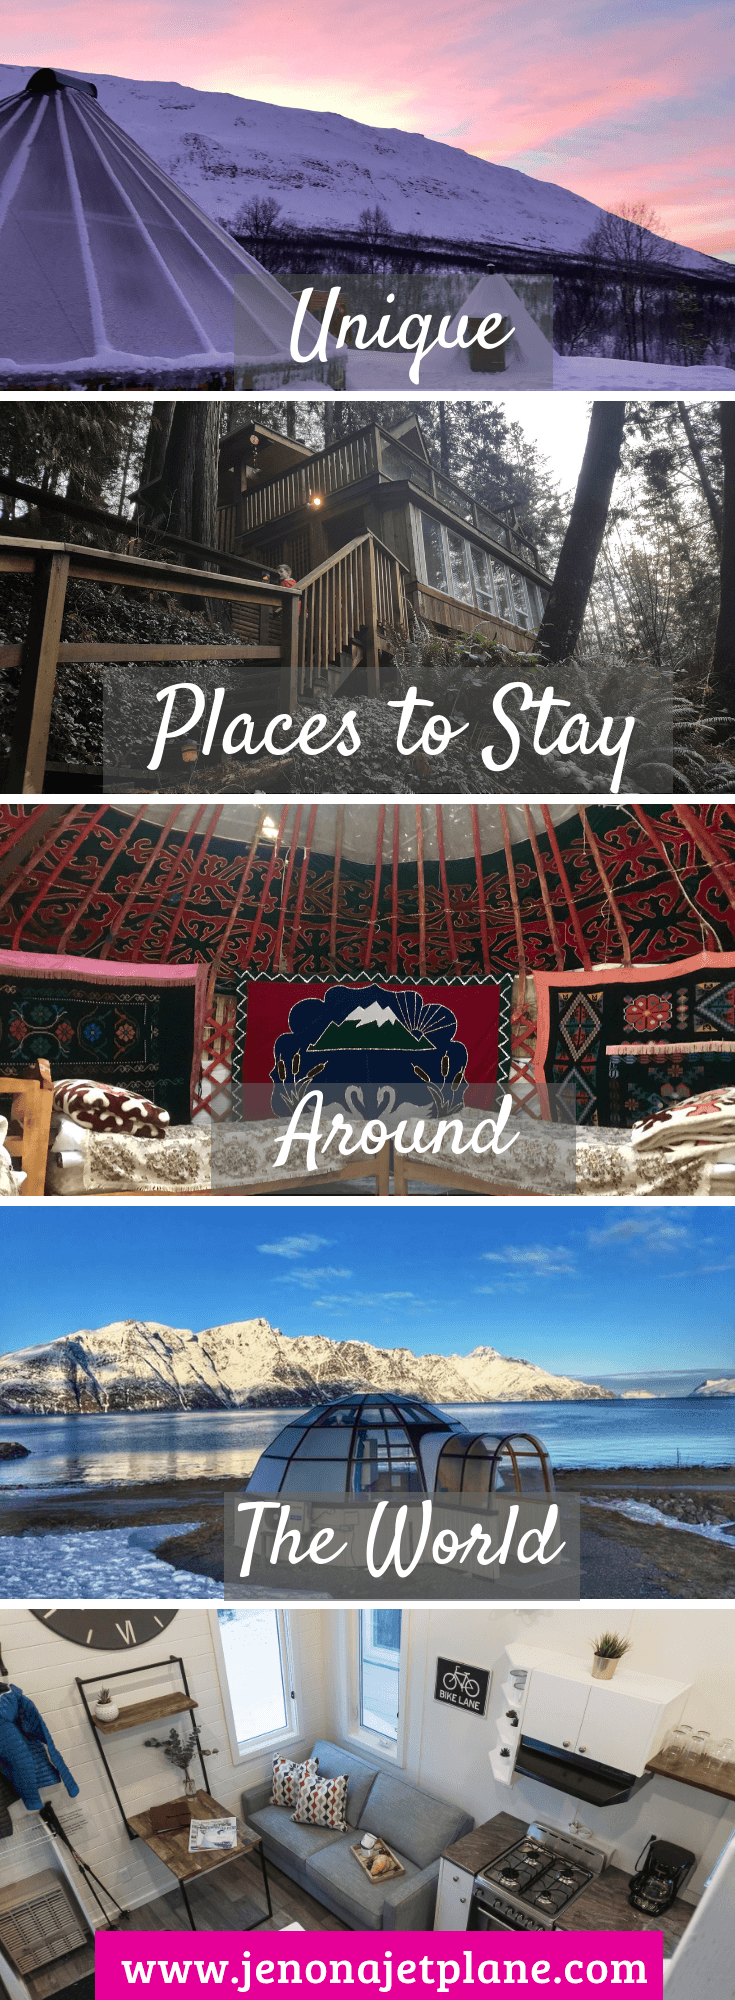 Looking for the most unique places to stay around the world? From igloos to jungle treehouses, these destinations should be on your bucket list! #travelinspiration #travelgoals #bucketlistideas #wanderlusttravel